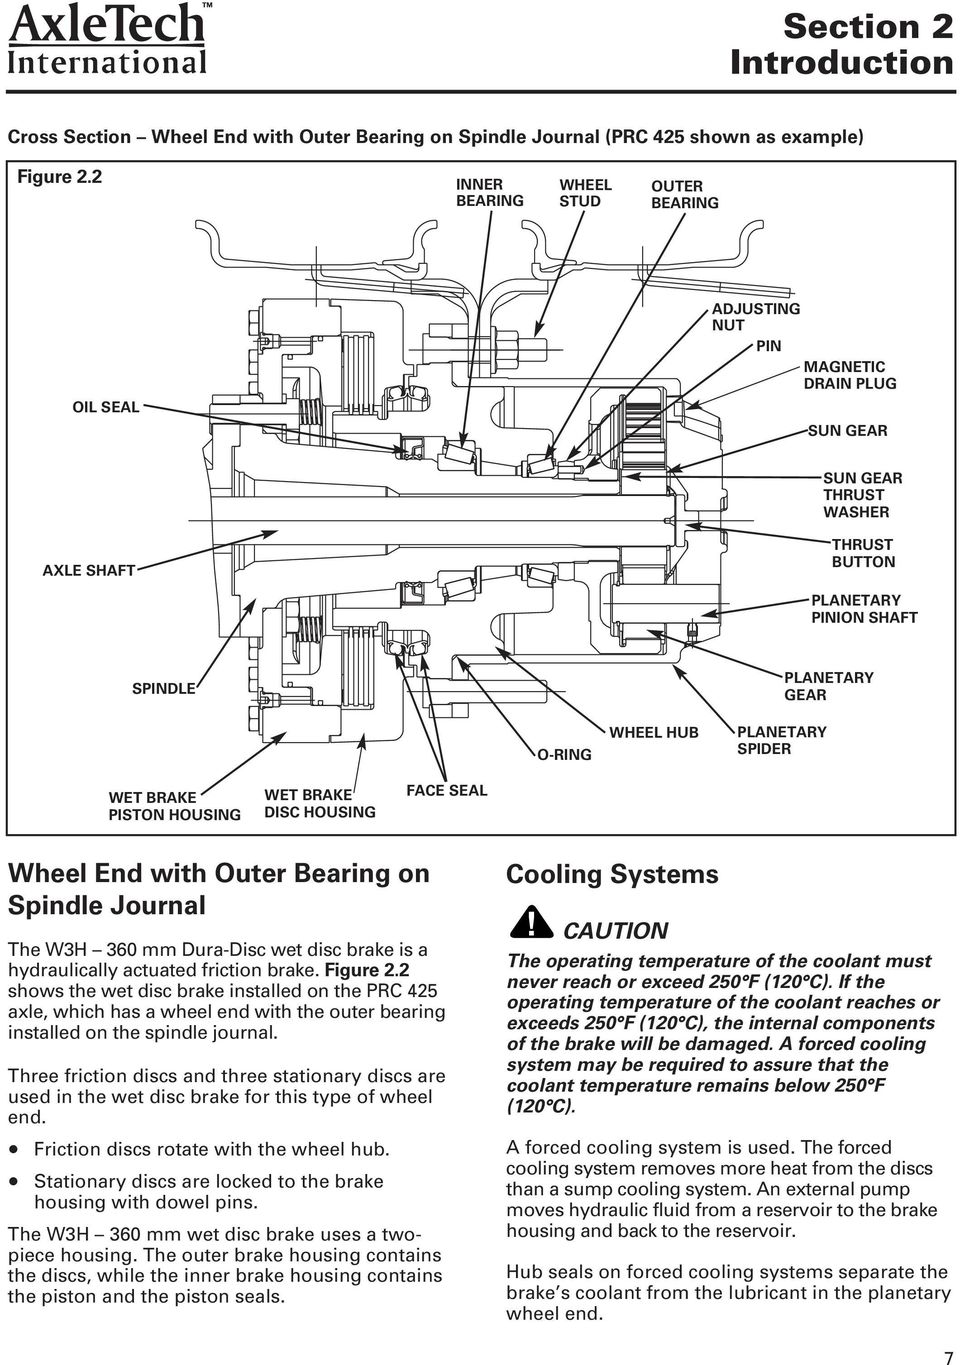 This Diagram Explains The Various Parts That Make Up A Disc Braking Wet Brake With Dowel Pins Pdf Wheel Hub Planetary Spider Piston Housing Face Seal End